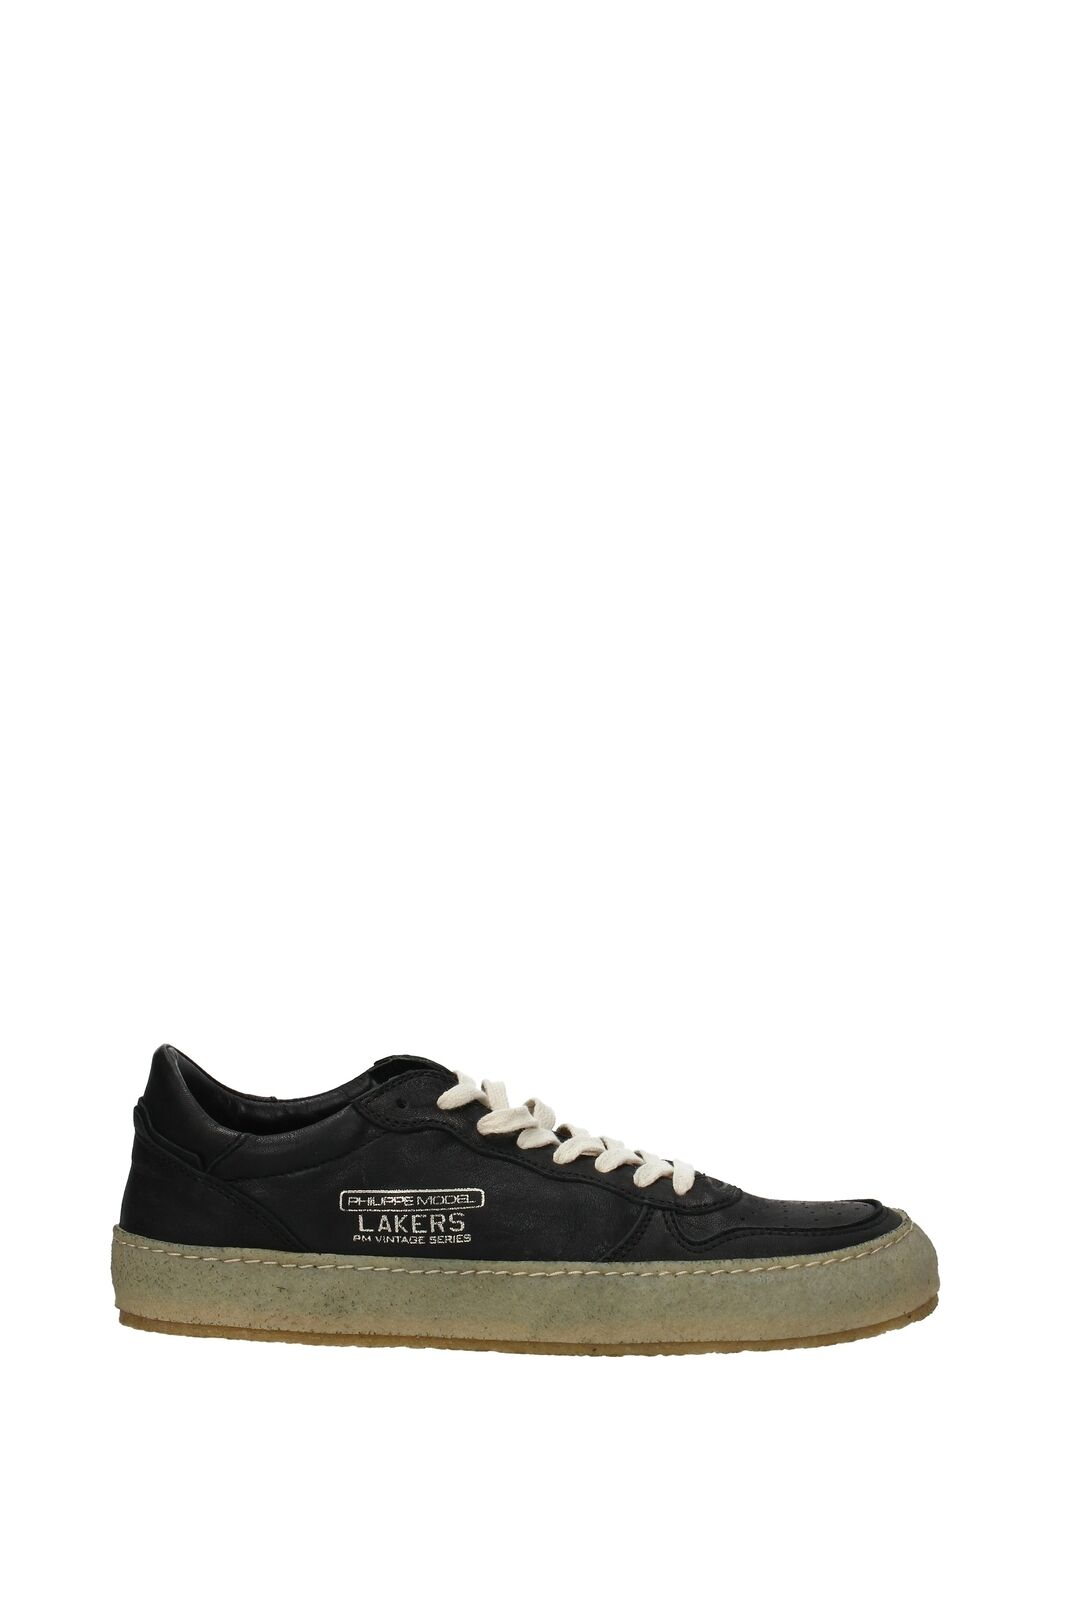 Sneakers Philippe Model lakers Men - Leather (LVLUWW)